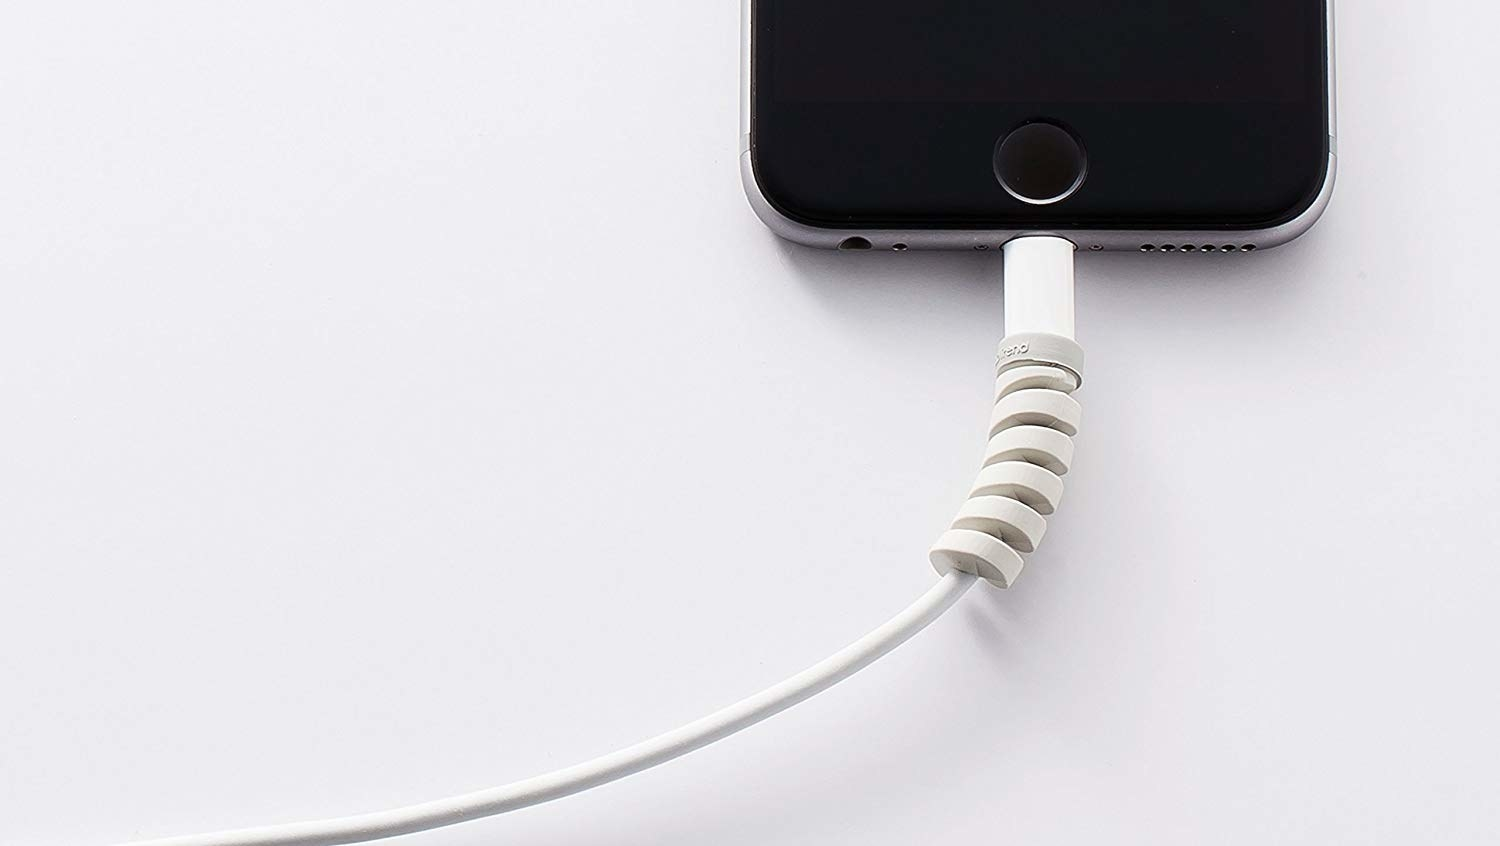 cord plugged into iphone with spiral protector over the top part